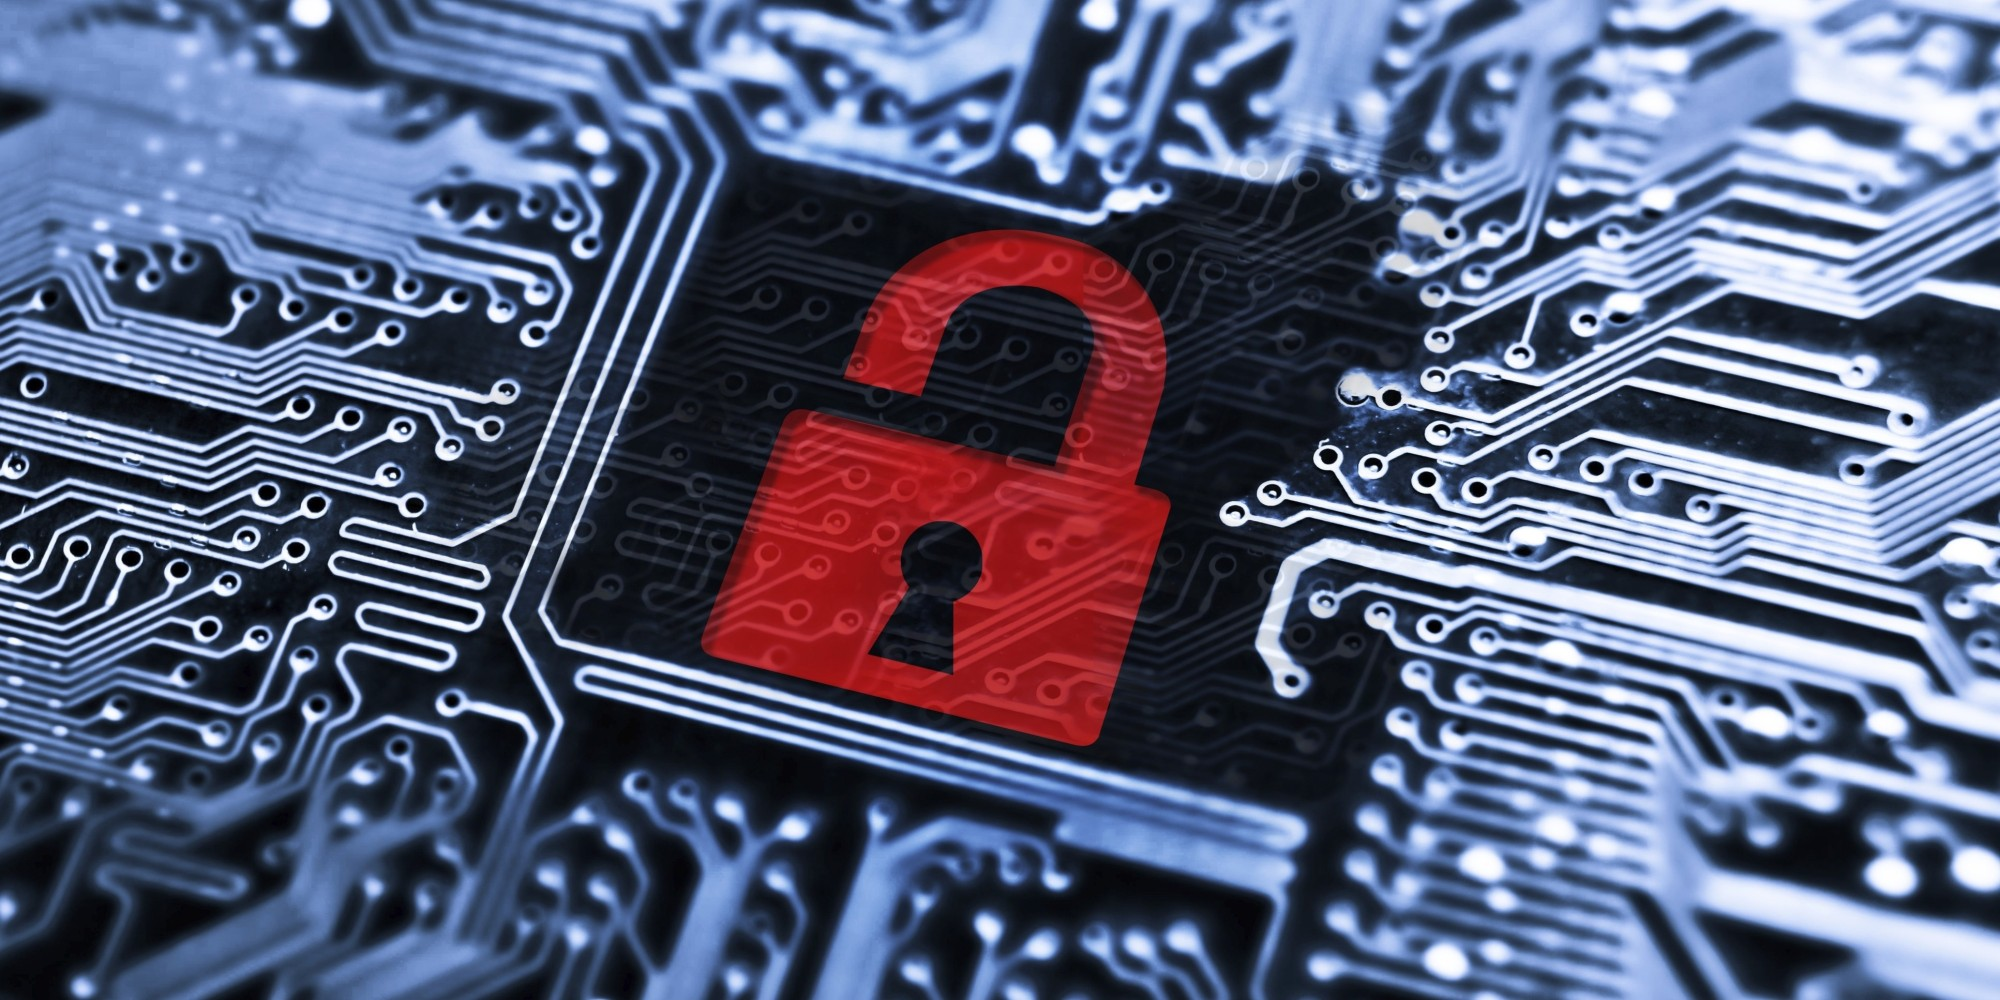 5 Simple Ways You Can Protect Yourself Against Identity Theft and Cyber-Attacks